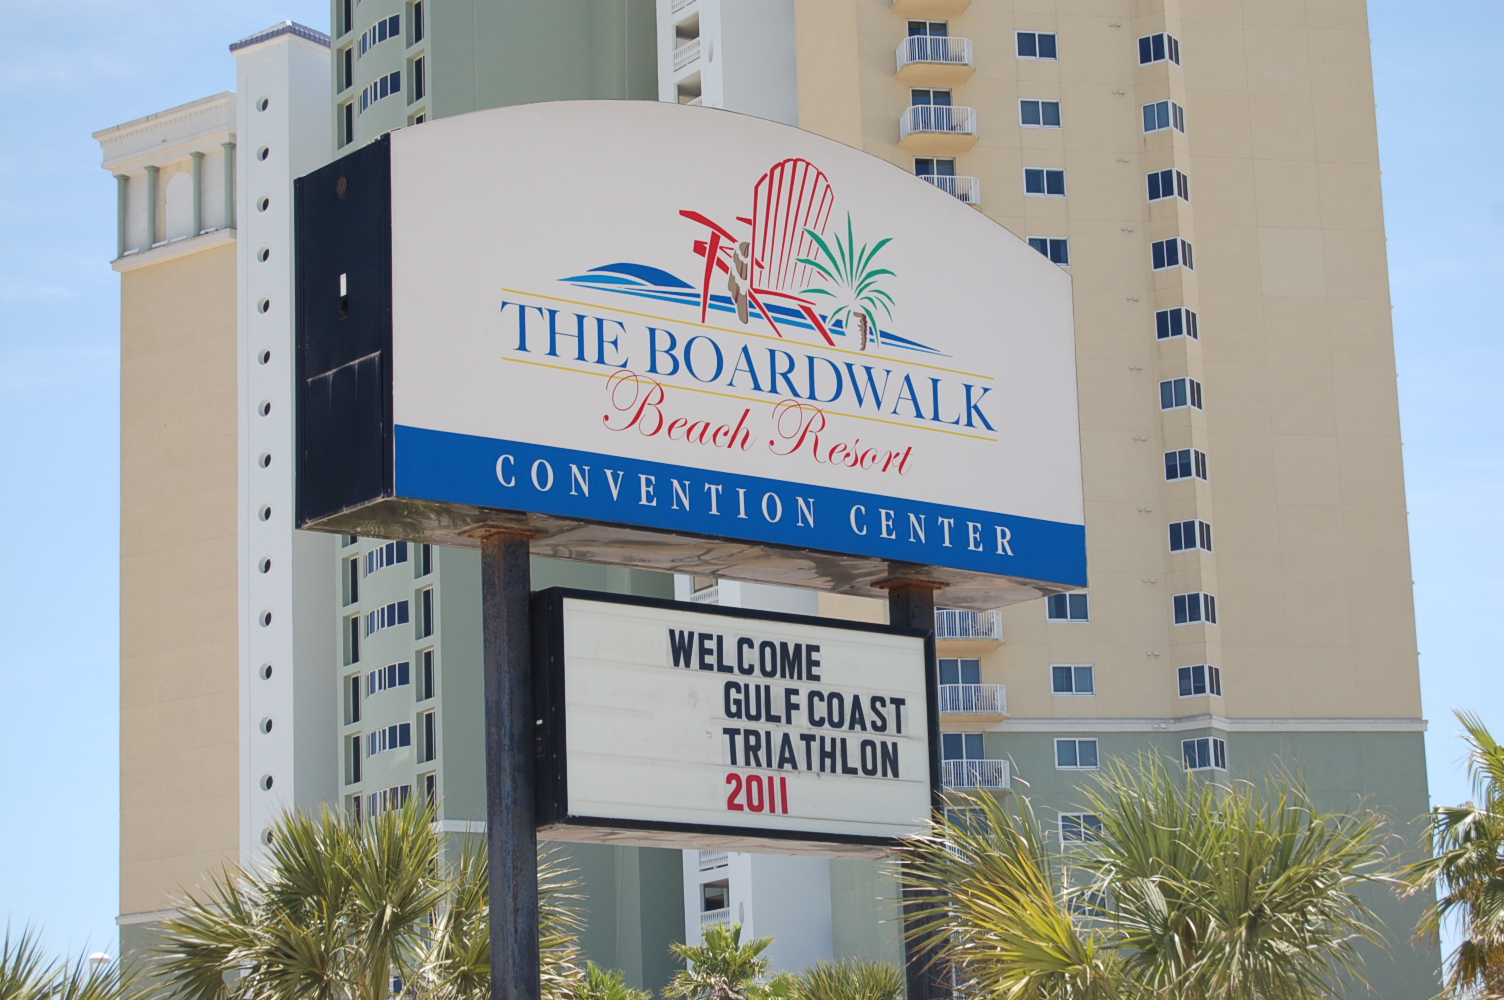 The Boardwalk Beach Resort In Panama City Florida With Adjacent Condos Background